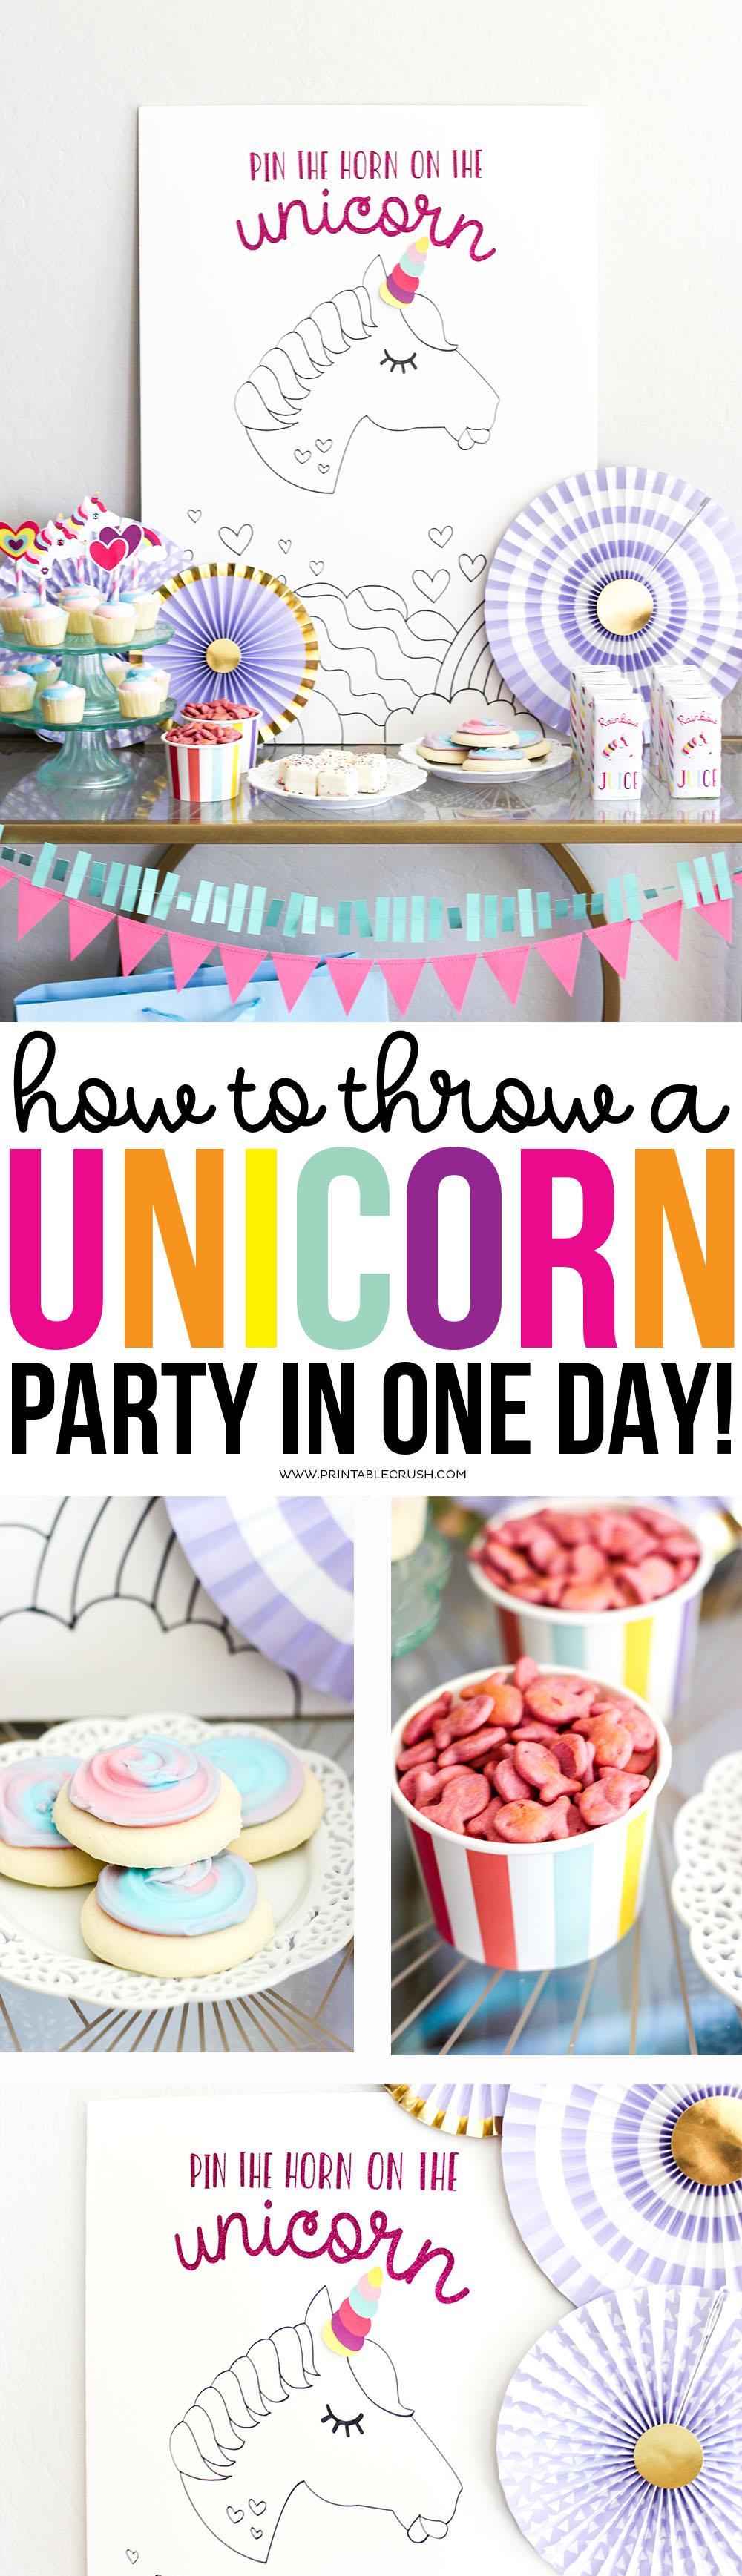 Learn how to Throw a Unicorn Party in One Day with all these budget friendly tips! From party planning and shopping to printables, this has you covered.